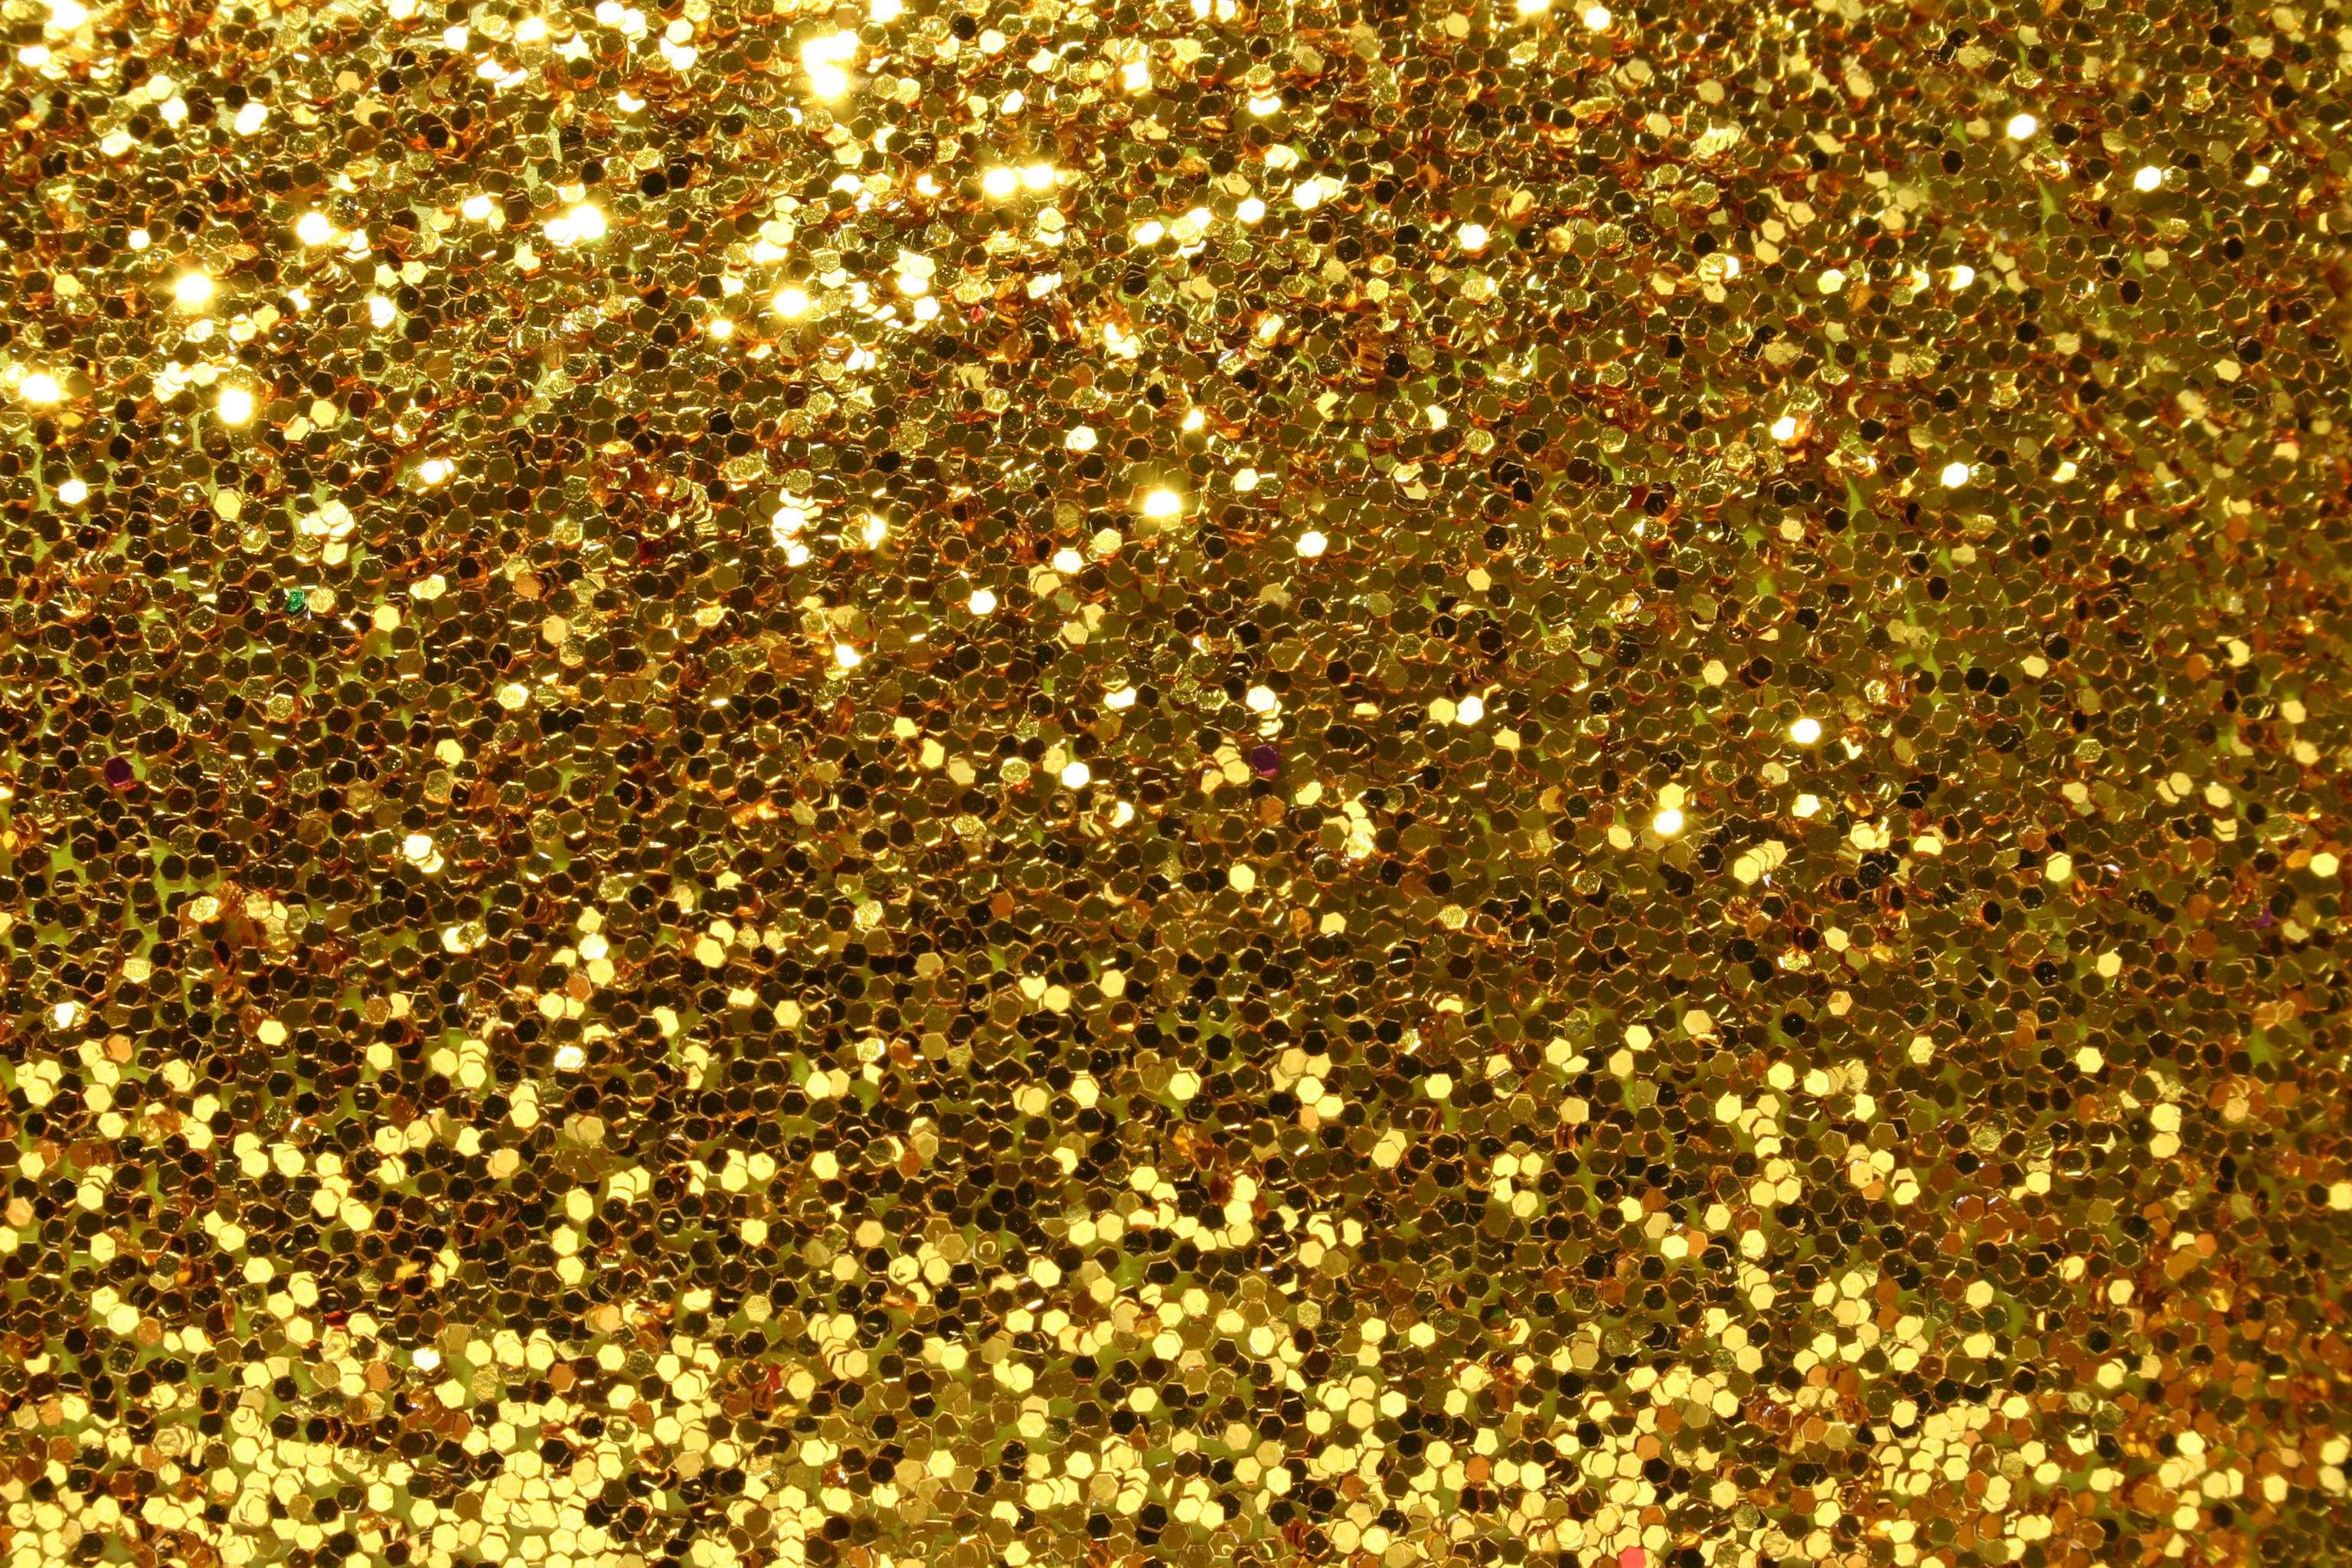 Res: 3072x2048, Golden Glitter Gold Sparkle Background Wallpaper Hd Full Pics For Iphone  Backgrounds Hq